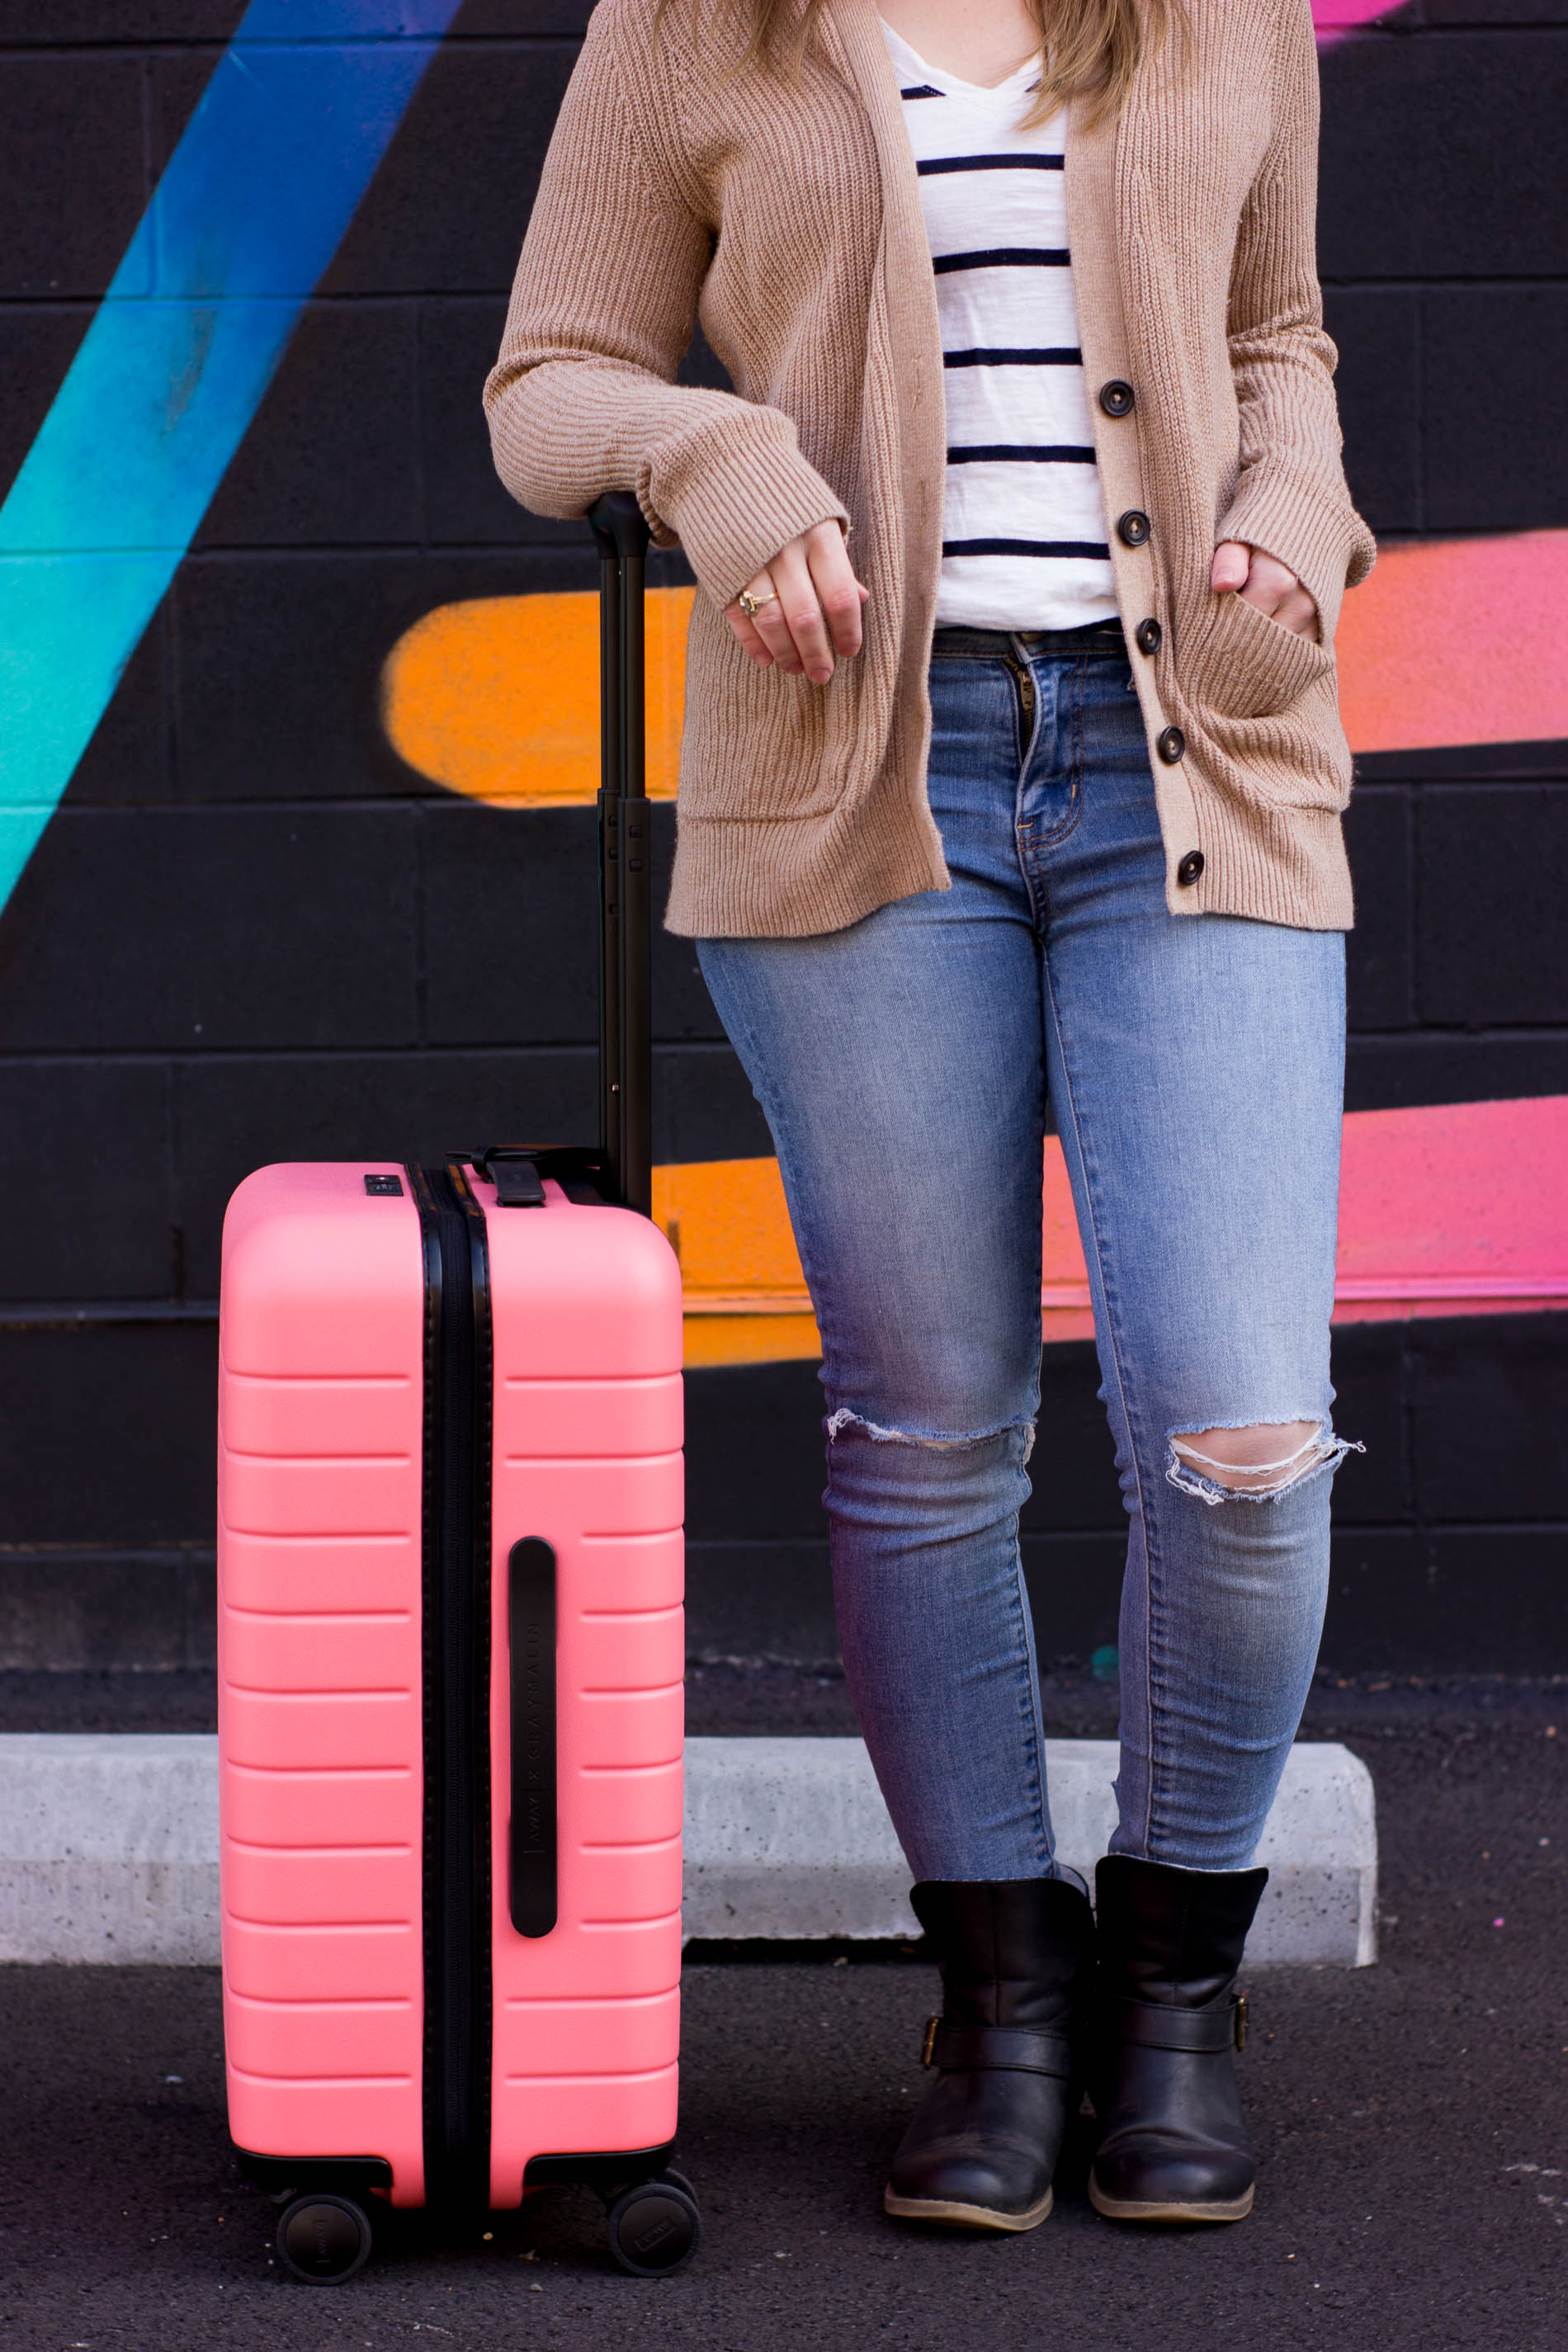 The Perfect Travel Outfit | Something Good, @danaerinw , away x gray malin, the bigger carry on,